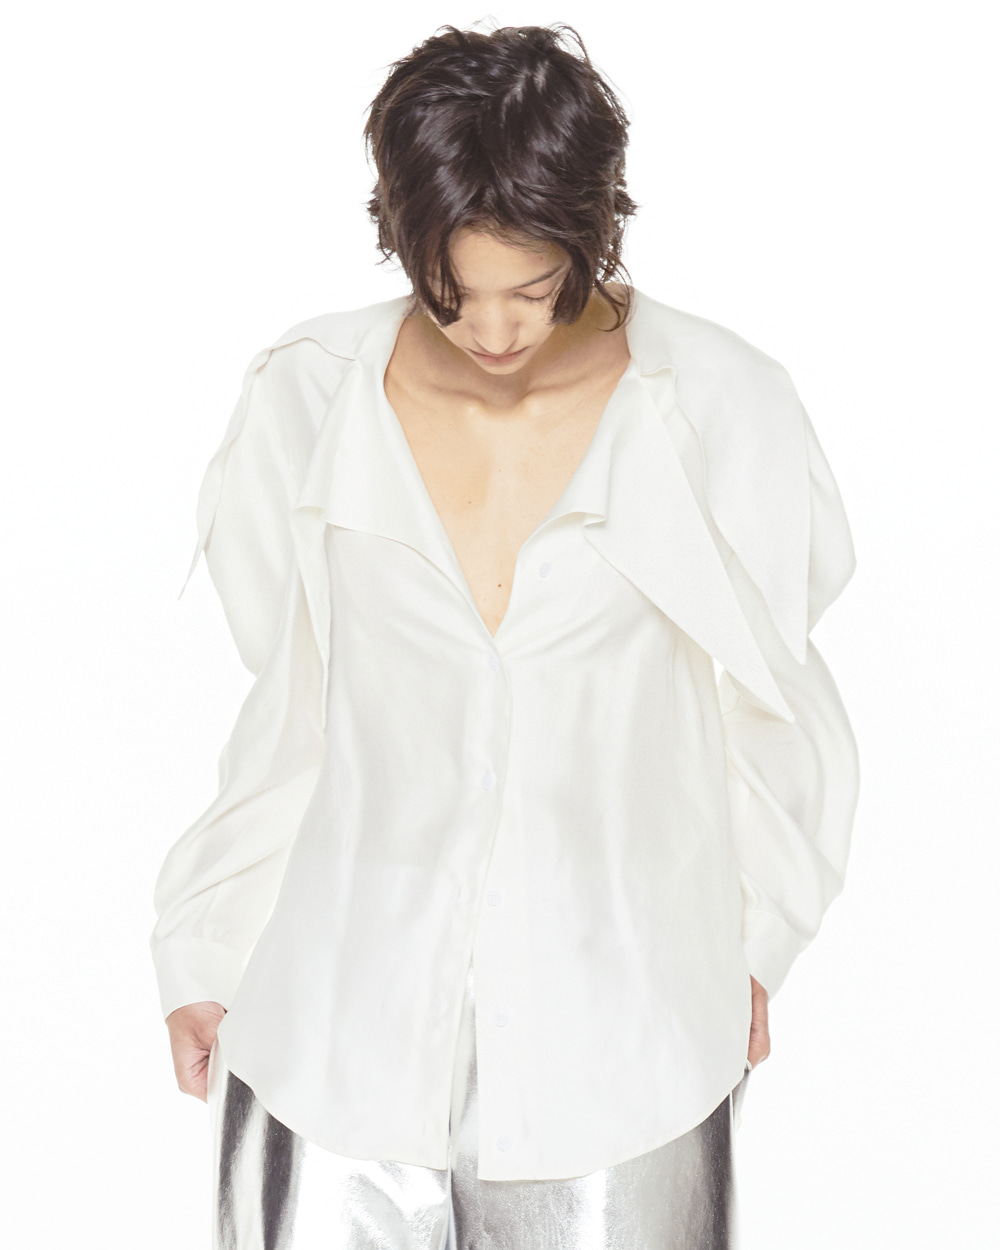 FW20 DOUBLE POINTY COLLAR WHITE BLOUSE